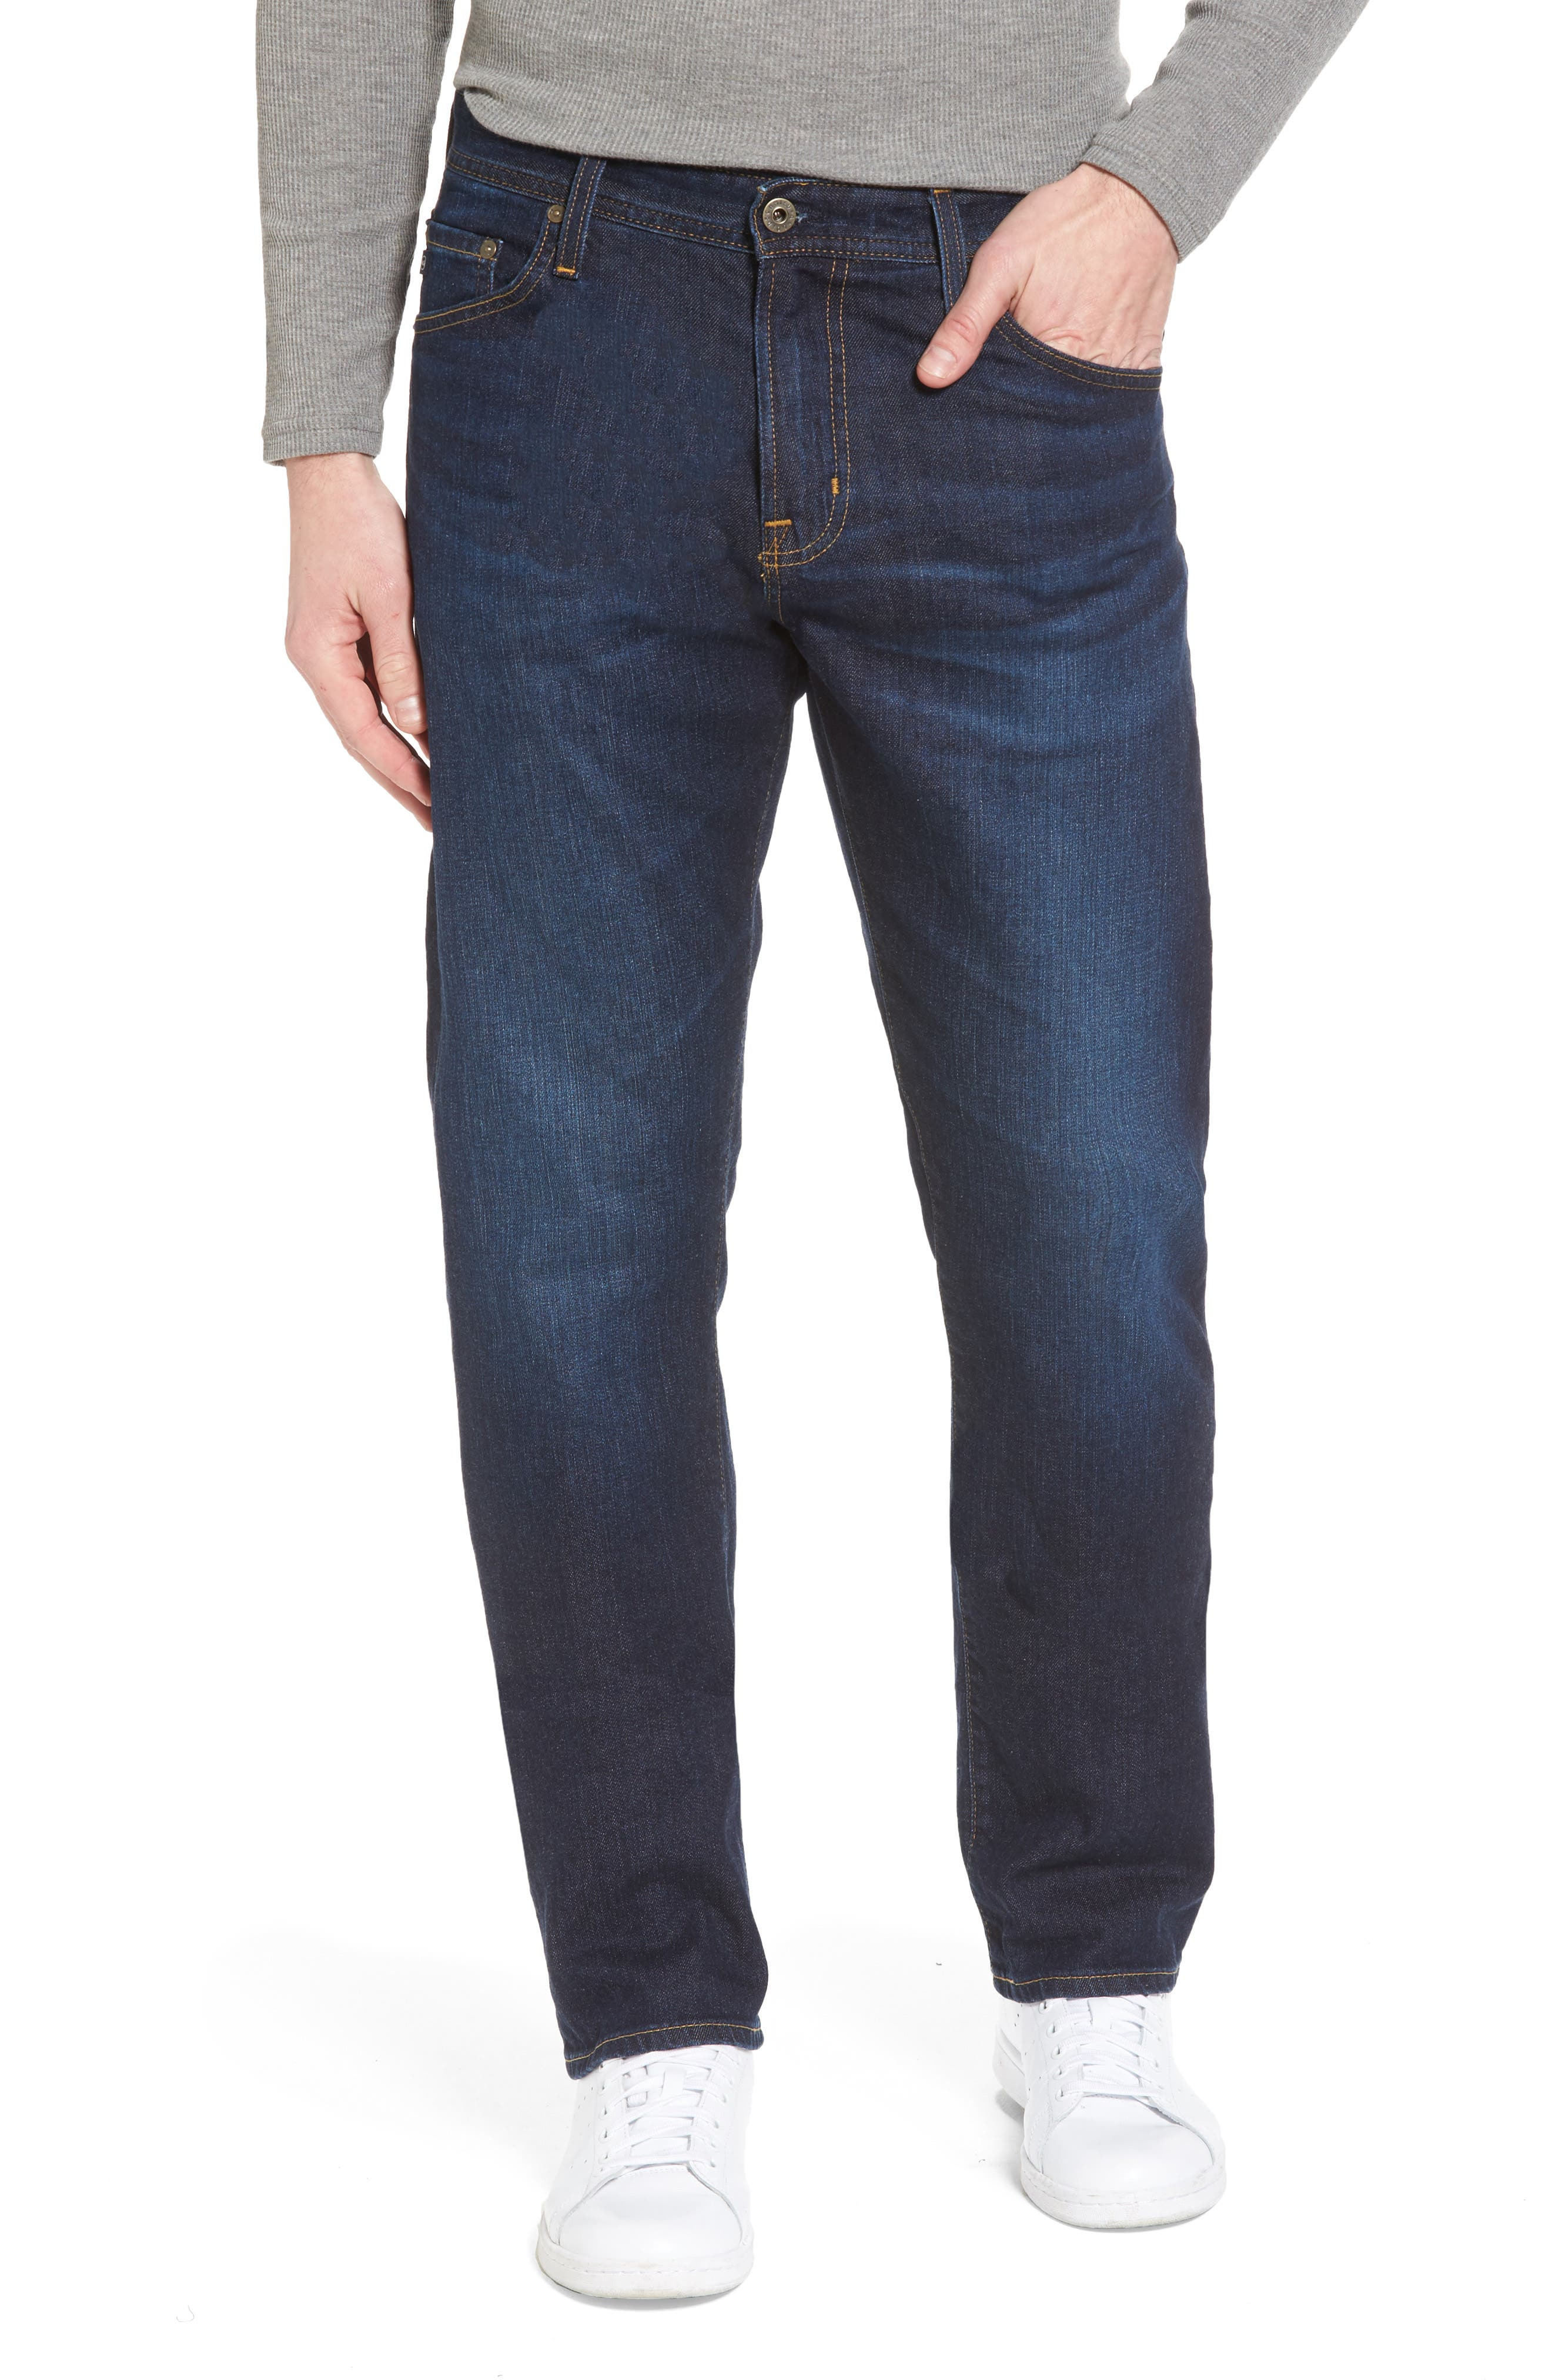 Ives Straight Fit Jeans,                         Main,                         color, Series